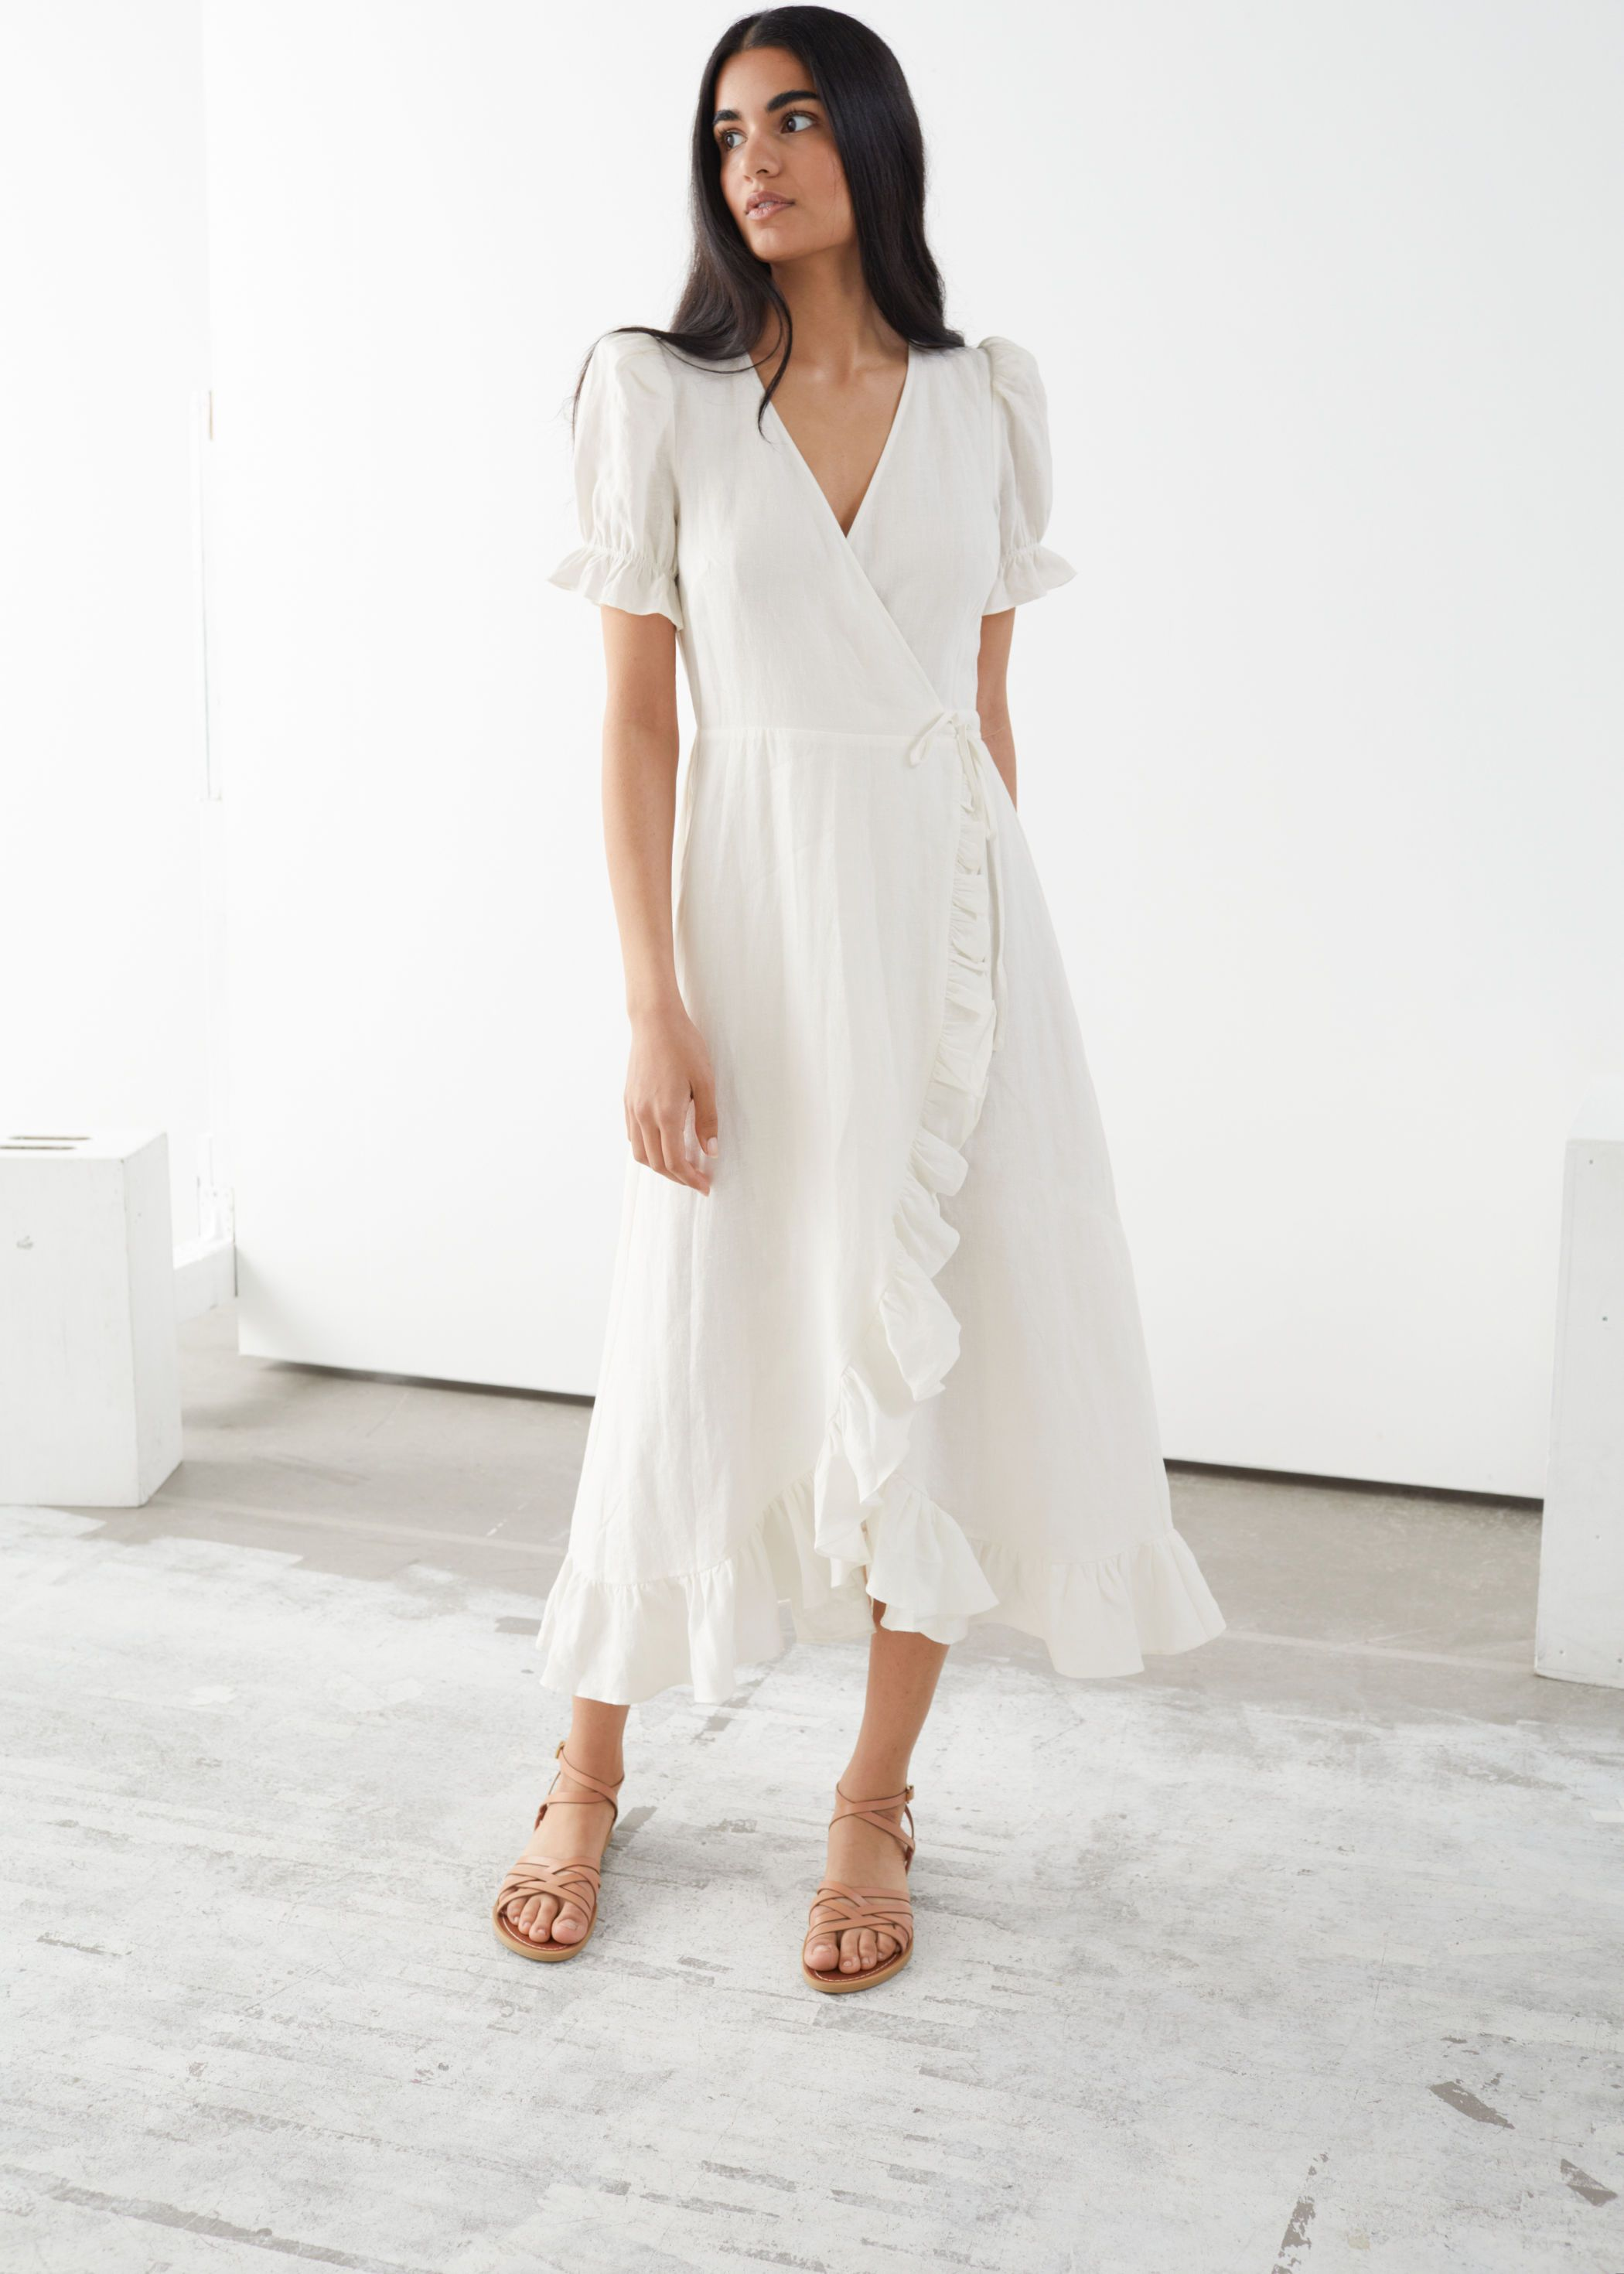 Endource Frilled Wrap Dress By Other Stories Made From Linen Linen Is Made From The Fibres Of The Flax Plant W Wrap Around Dress Wrap Dress Midi Dresses [ 2940 x 2100 Pixel ]